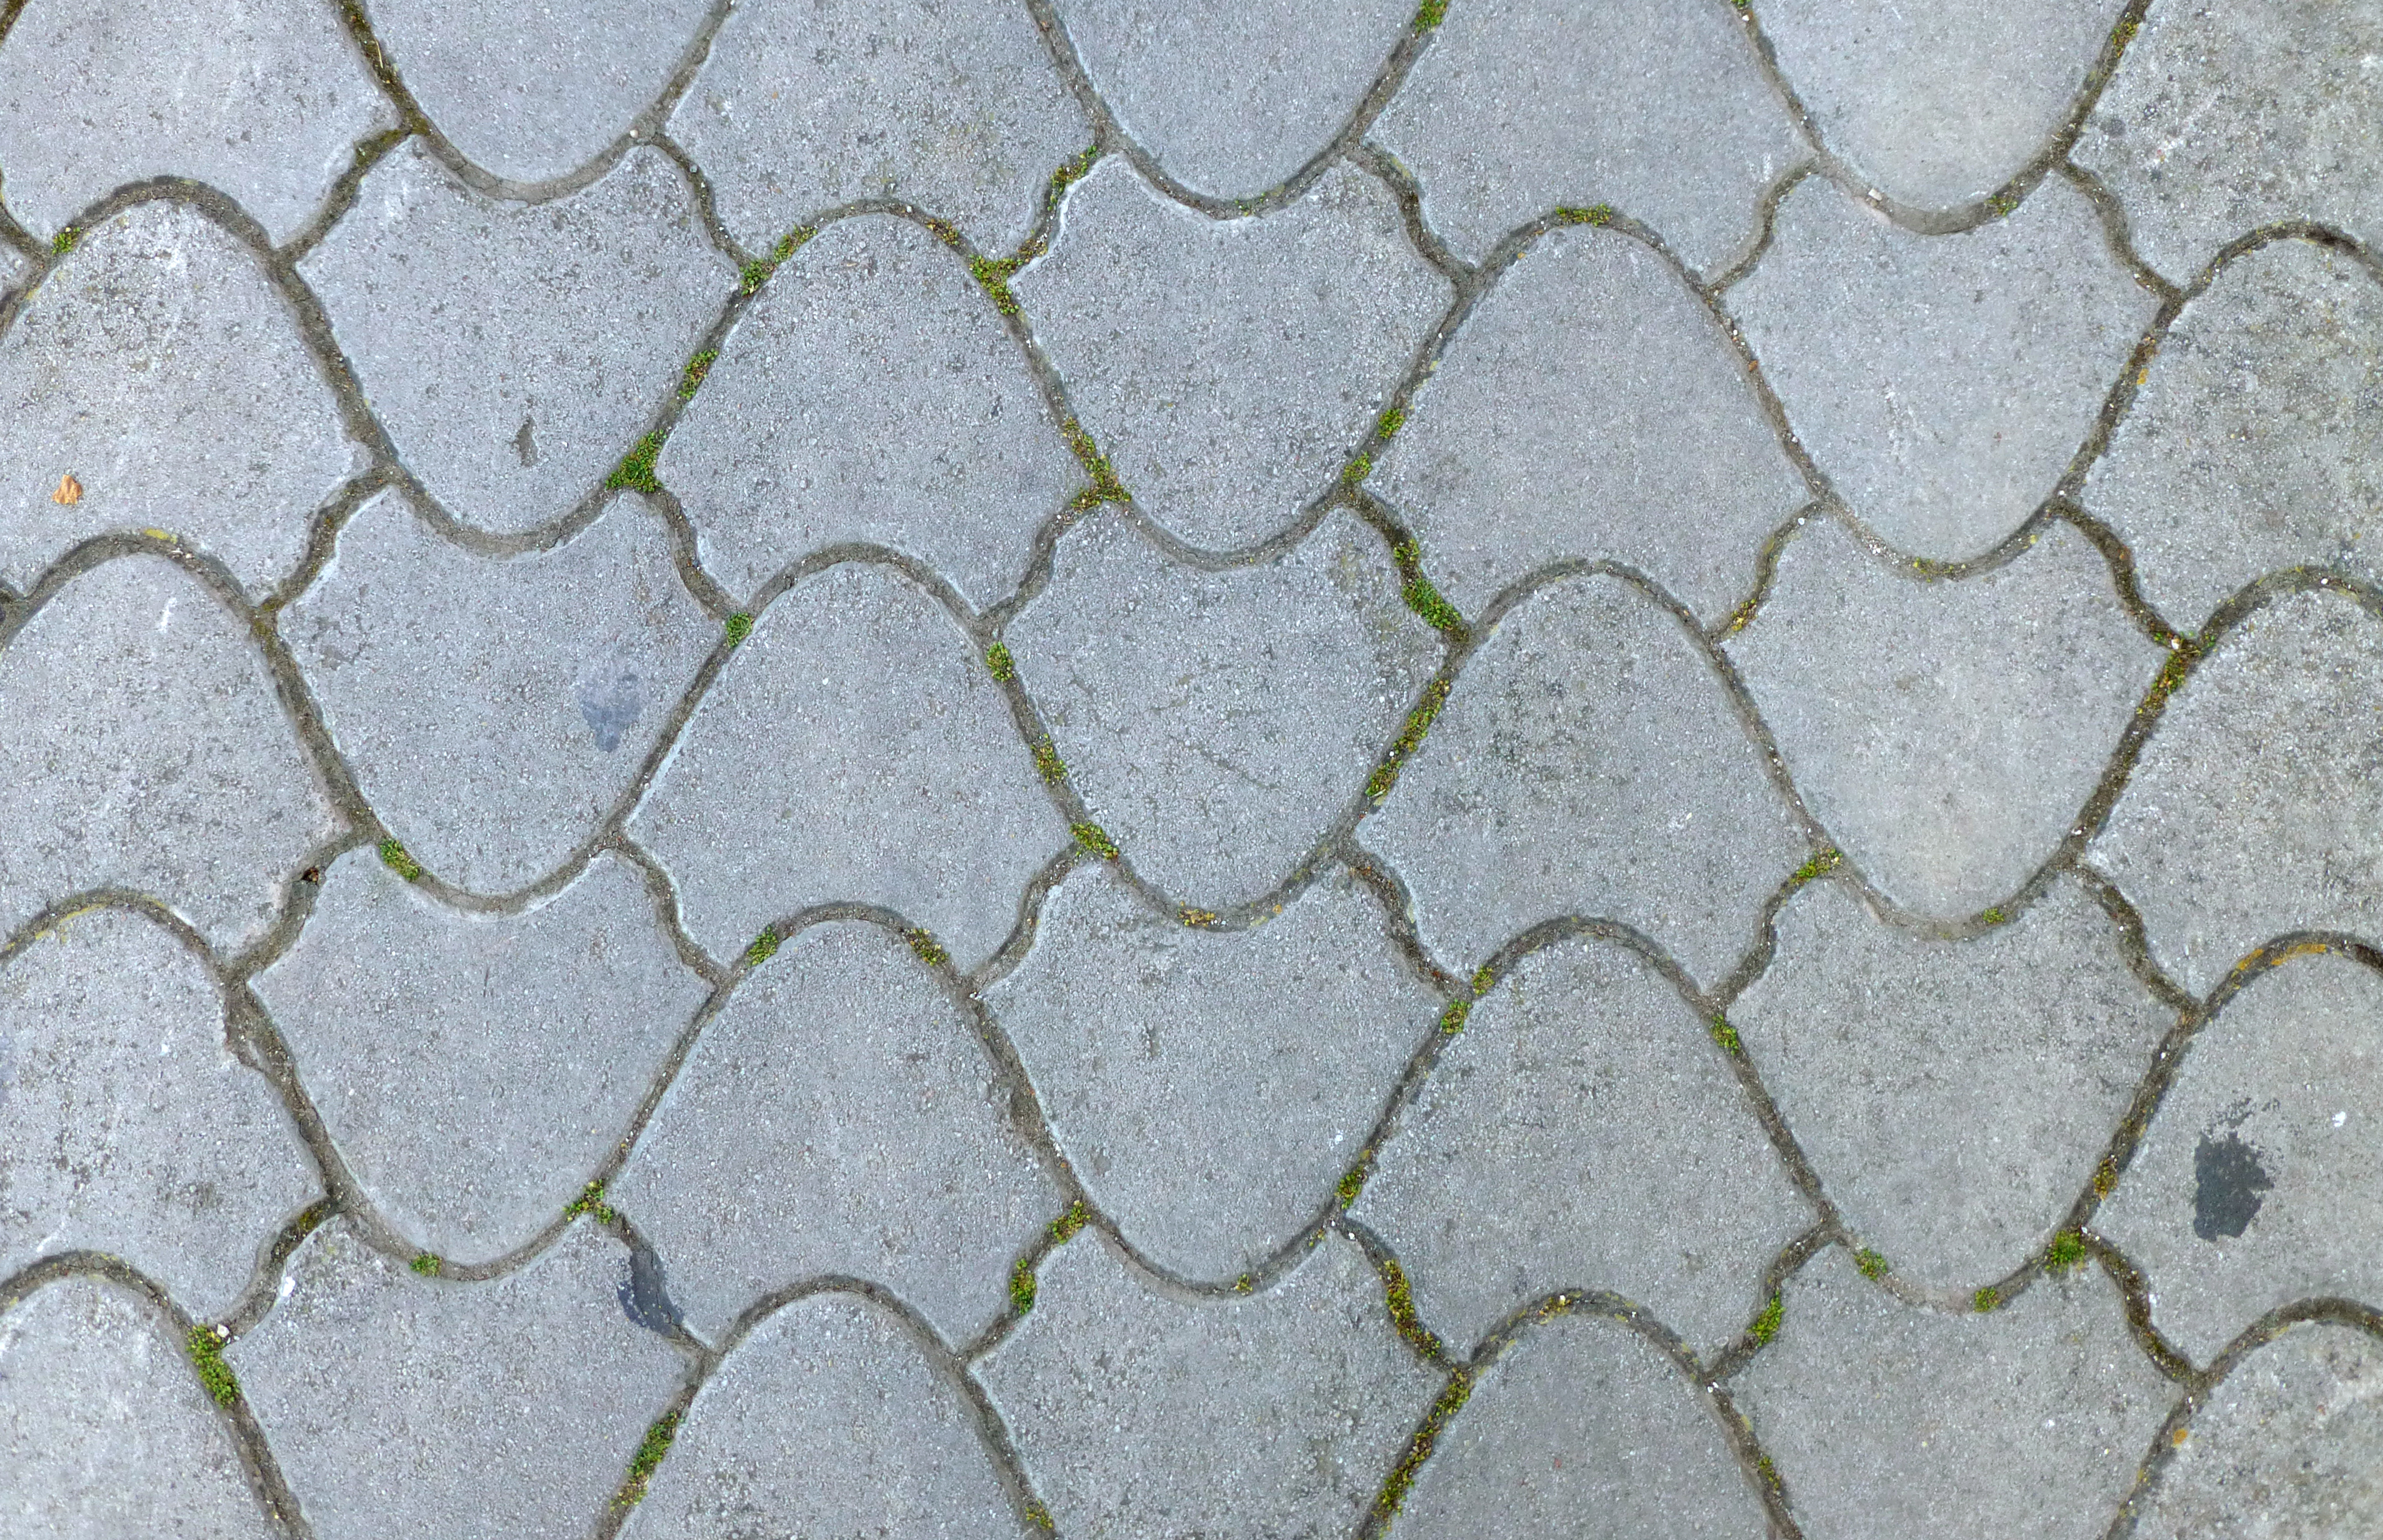 File Pavement Texture Round Tiles Jpg Wikimedia Commons